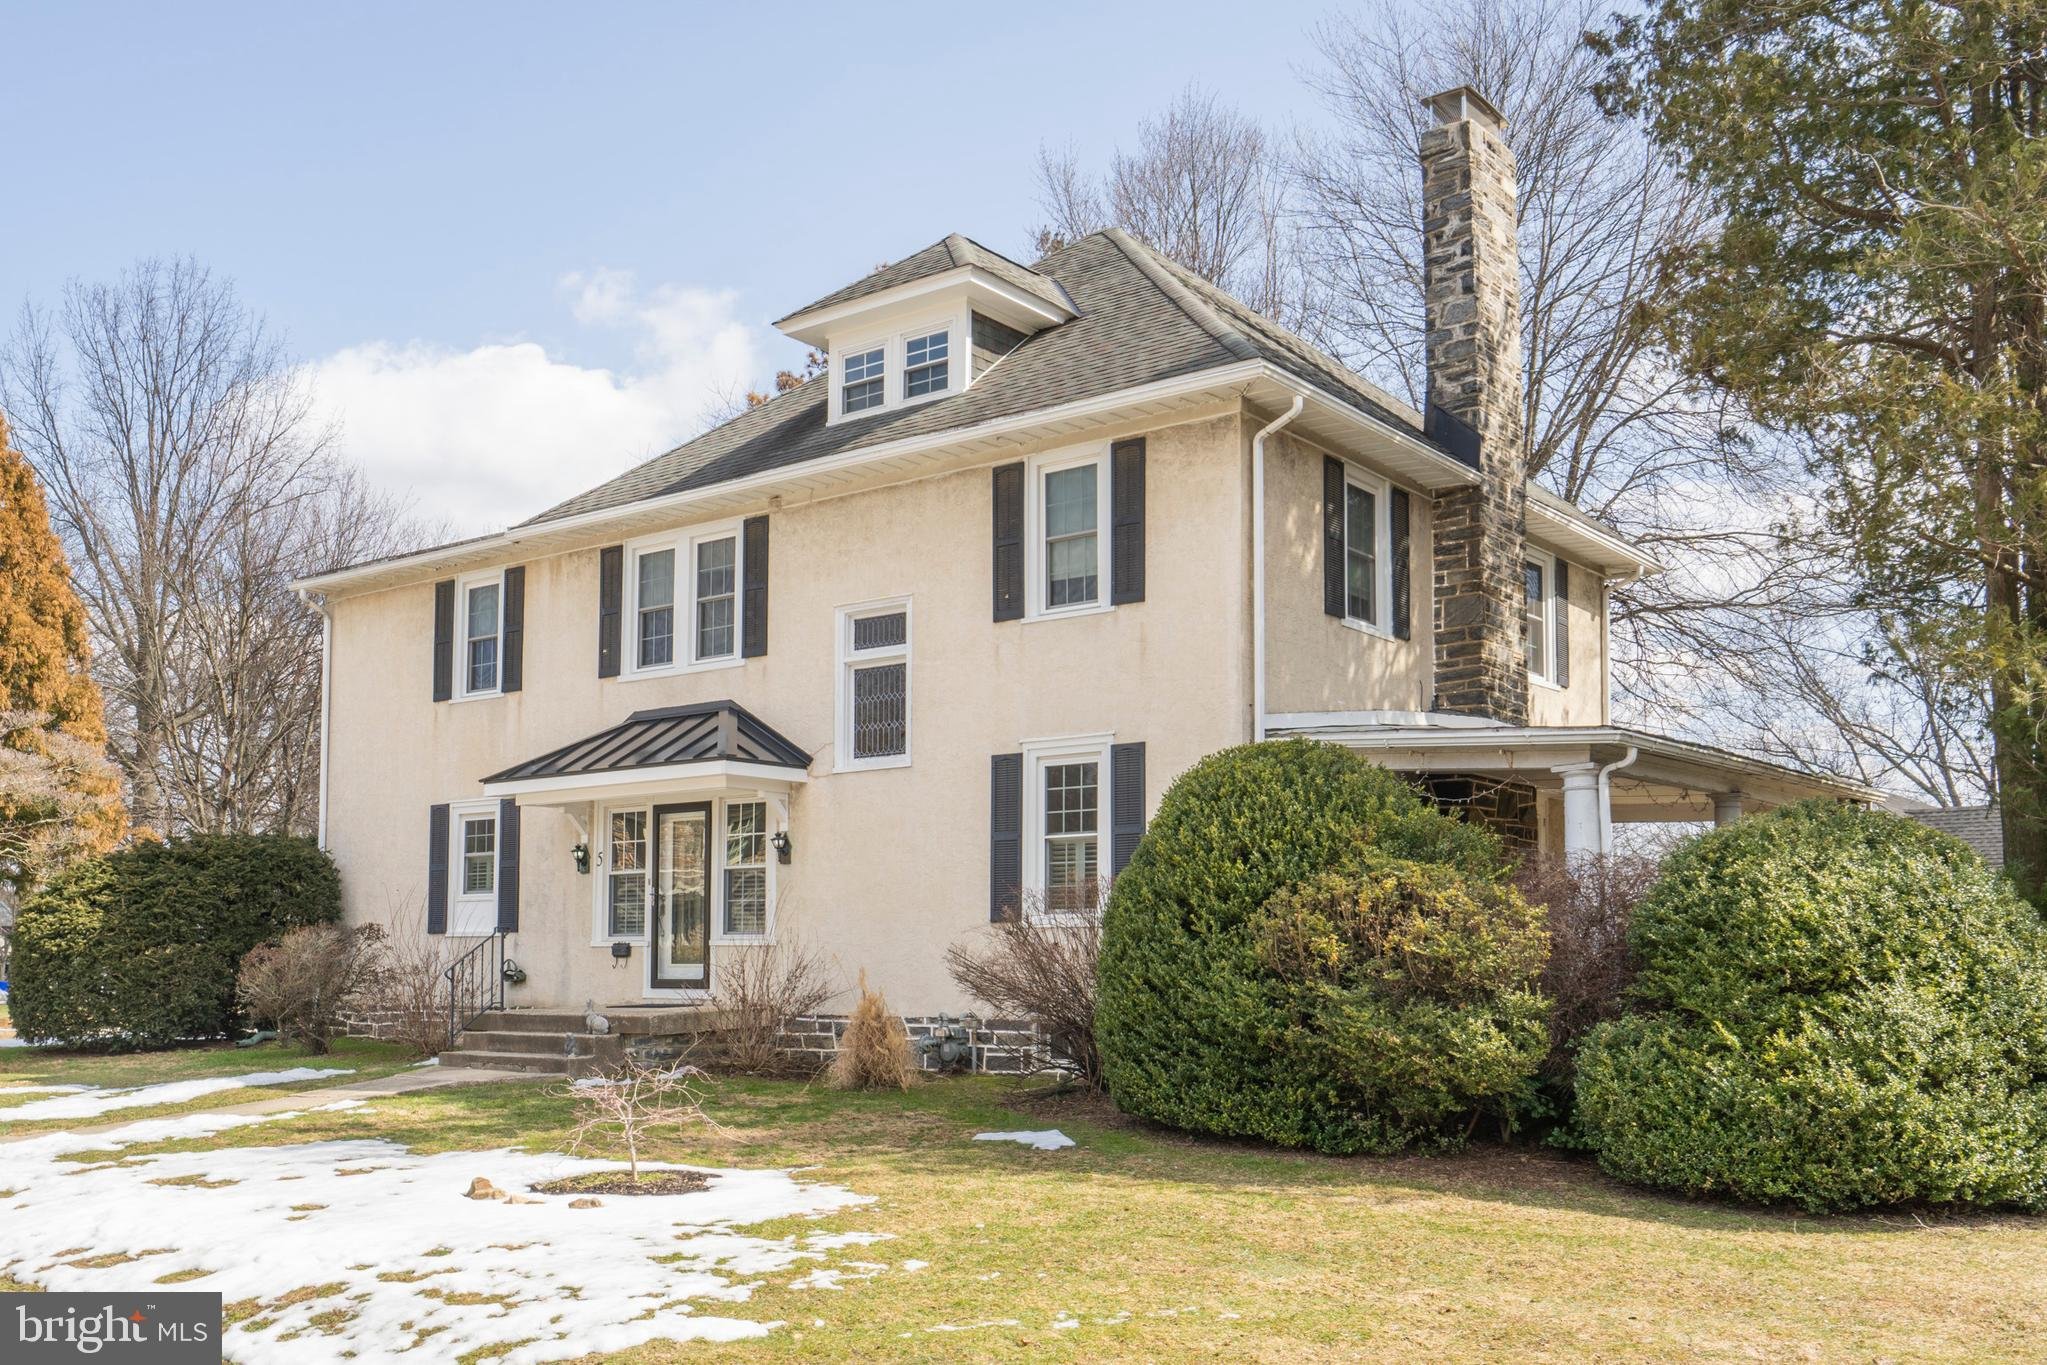 This one is special! Elegant Merion Golf Manor home with many upgrades and updates. Enter into a grand foyer and you will immediately notice the floor plan on the first floor is ideal. To the right is the large living room  with stone fireplace and double french doors that open to the covered side porch. To the left of the foyer is the breakfast room and updated kitchen. These owners have added the new gourmet kitchen with high end appliances, all new baths, new floorings, new central air and lighting. Only a new opportunity in another city would make them want to leave this lovely home. The breakfast room is where you will find the back stairs to the second floor, and access to the first floor laundry, mudroom and powder room. The outside entrance near the garage also leads to this updated space,  What was originally the dining room is now being used as a first floor den, and is a much better use of space for today's lifestyle. However there is plenty of room in the oversized living room to tuck in a dining area, if needed.  That is the beauty of a flexible floor plan. Crown moldings, hardwood floors with walnut ribbon inlays, and beautiful woodwork, all add to the charm of this home. The main stairs to the second floor originate in the living room. Notice the lovely stained glass stairway window.  There are four big bedrooms on the second level, with the most exciting room being a huge master bedroom suite with adjacent  sitting room/office space and newer master bath. The third floor offers another bedroom and storage. The basement is unfinished. New windows in 2019. The two car detached garage and garage door opener and of course there is a private drive. This home is close to everything.  An easy commute into town.  Enjoy everything Haverford Township has to offer. Great schools, walk to shopping and restaurants. Come enjoy Spring and Summer weather in your new address. It will be 5 Cedarbrook Road,